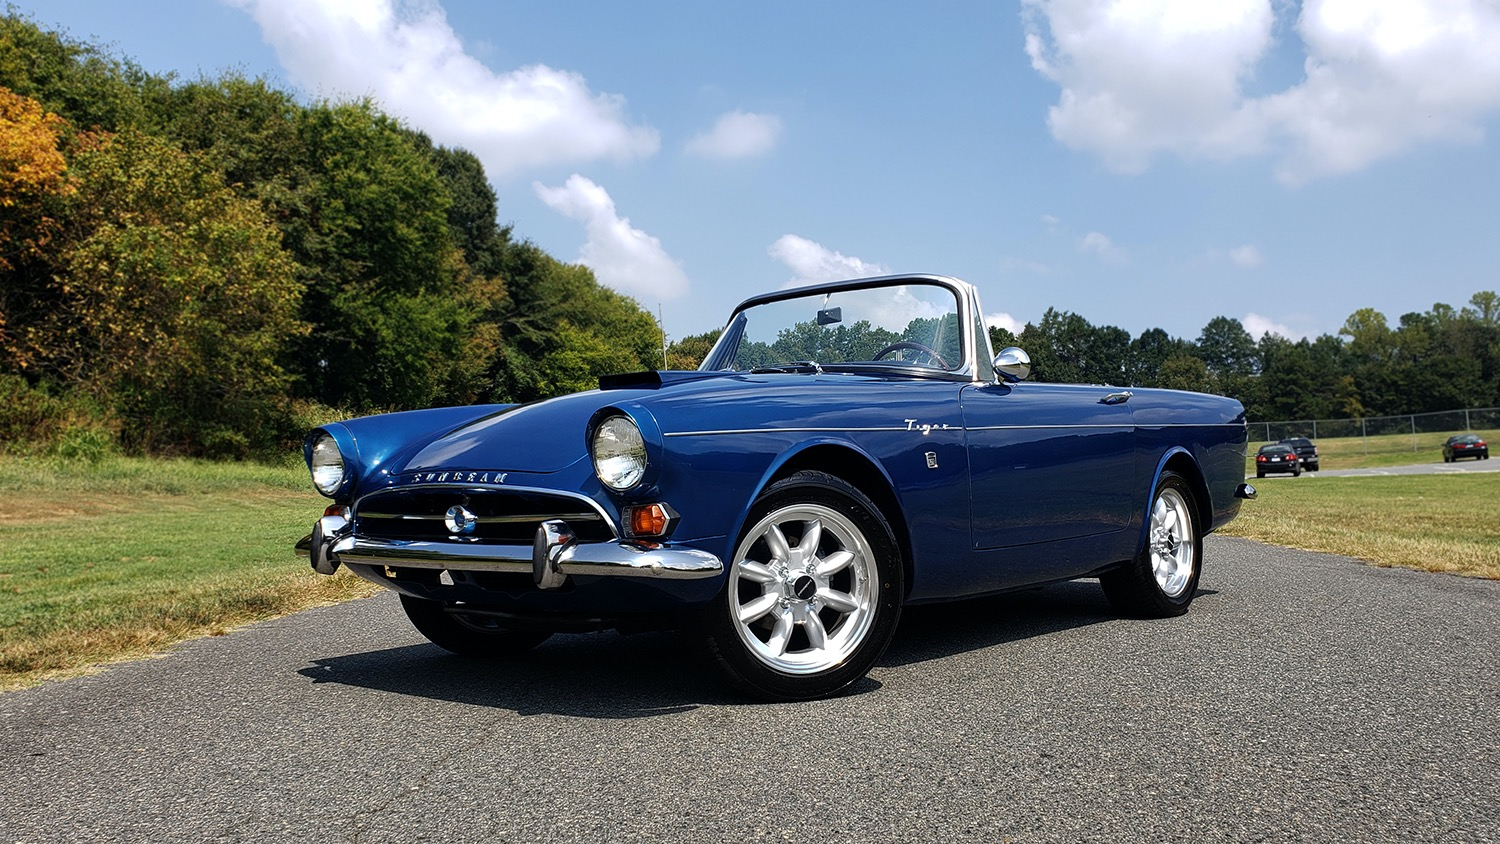 Used 1964 Sunbeam Tiger Convertible / 260ci V8 / 4-Speed Manual / Rear-Wheel Drive for sale $69,999 at Formula Imports in Charlotte NC 28227 3